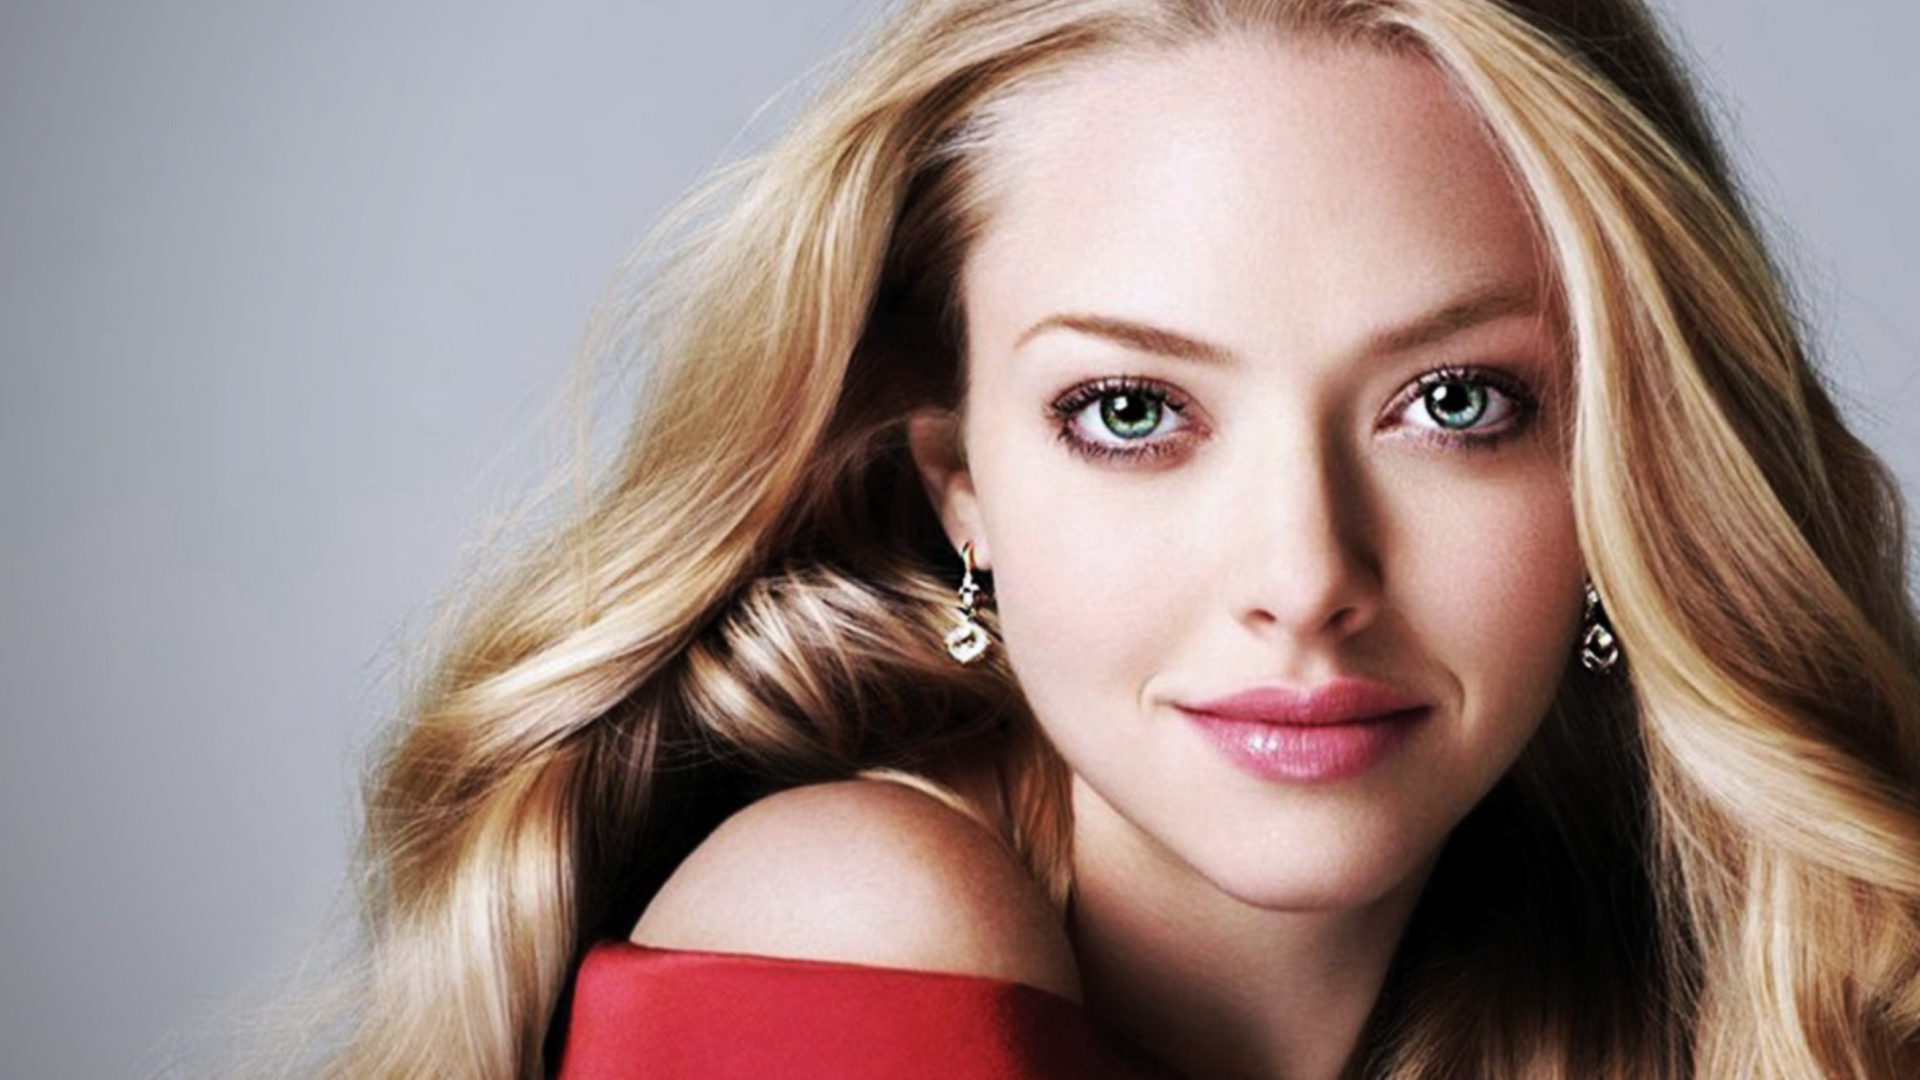 free amanda seyfried laptop hd background desktop images